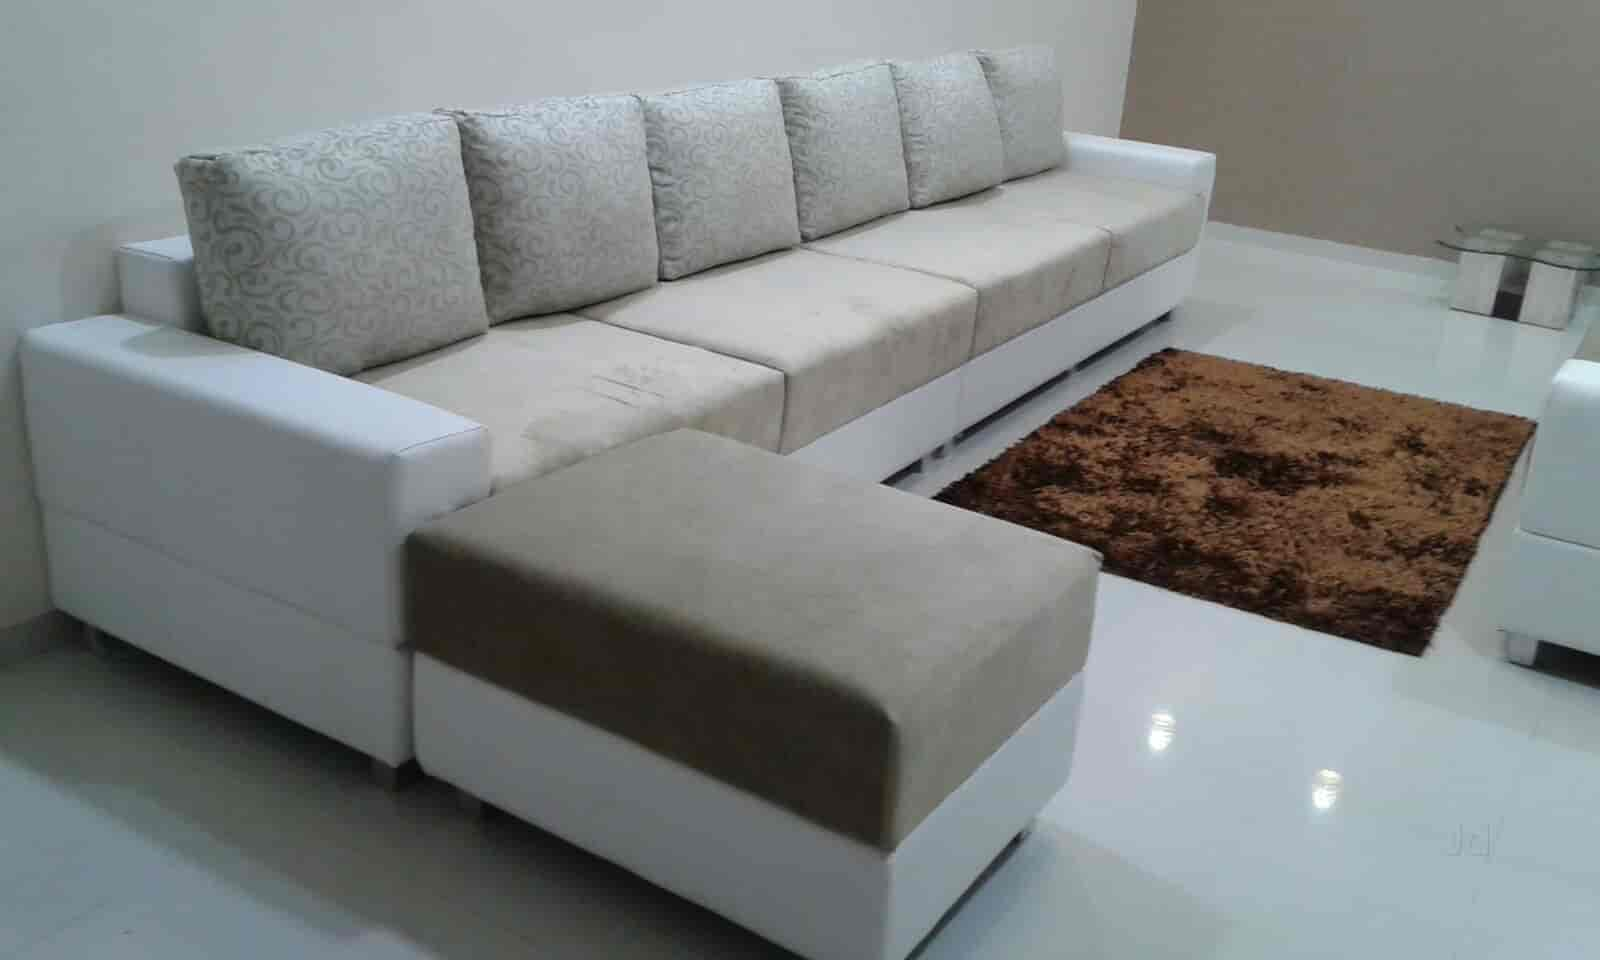 Sofa Olx Amravati Amrod V M V Road Furniture Manufacturers In Amravati Justdial